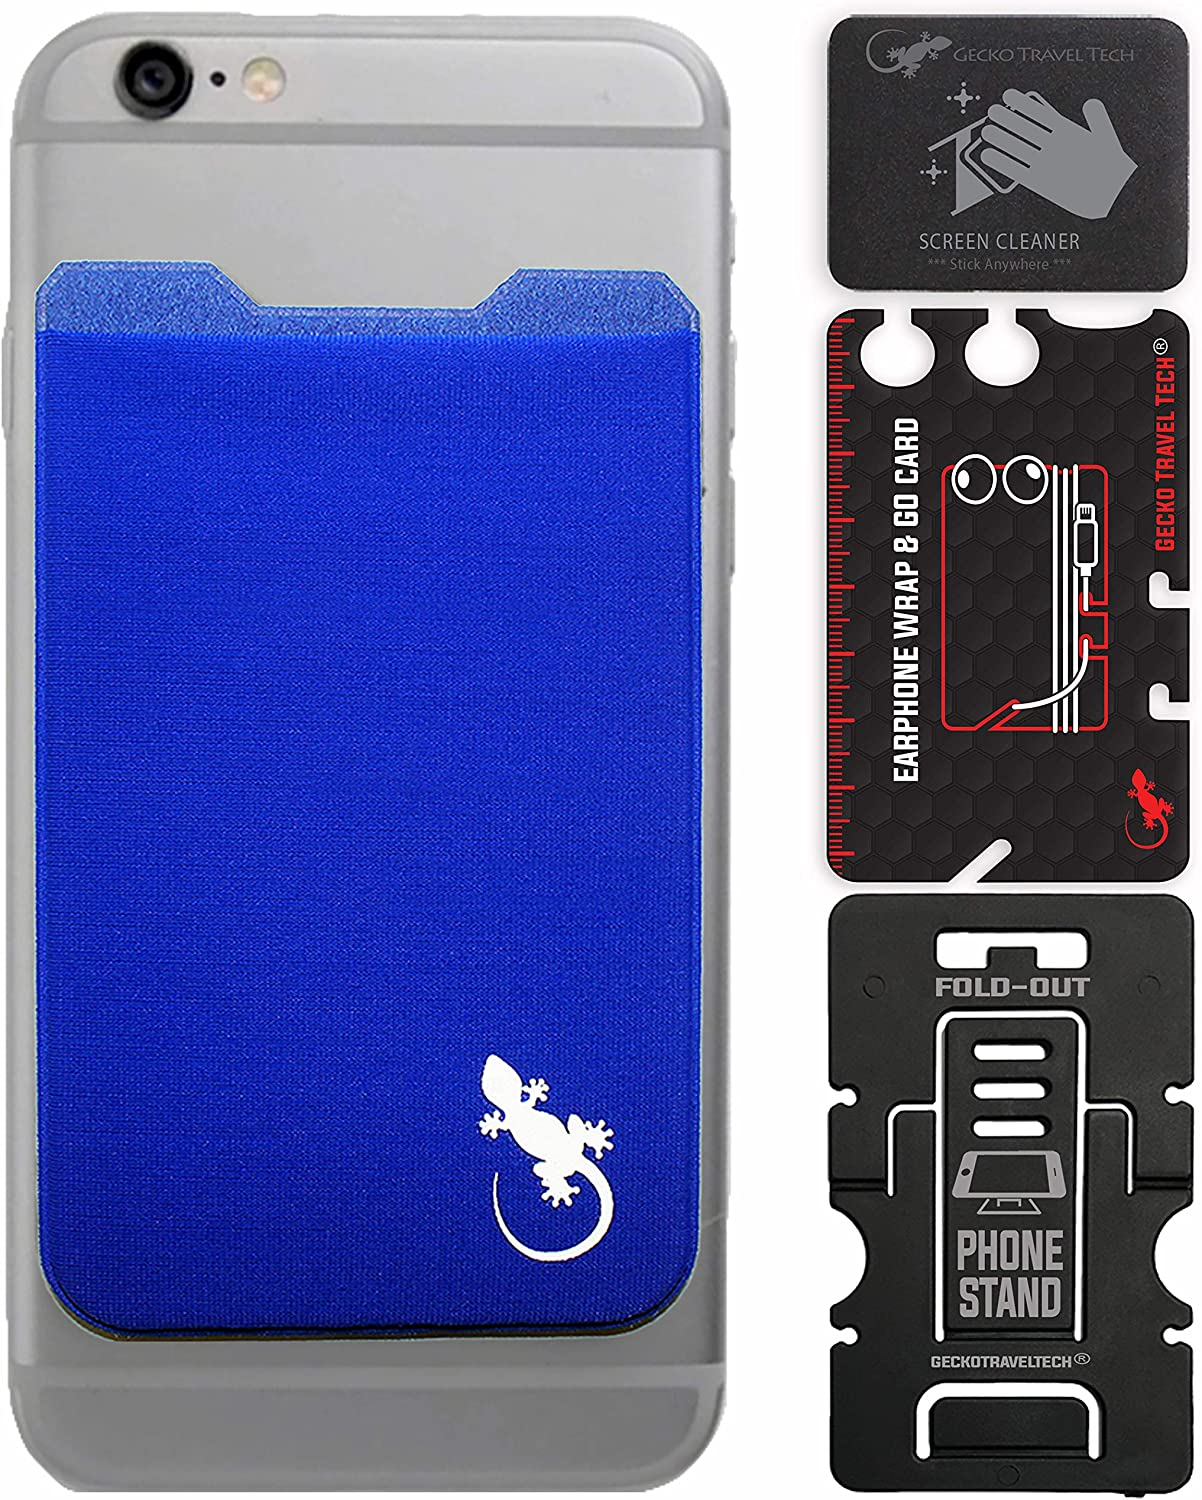 Gecko Travel Tech Blue Phone Wallet Adhesive - Blue Case Wallet for All Smartphones - Cellphone Case Wallet Blue